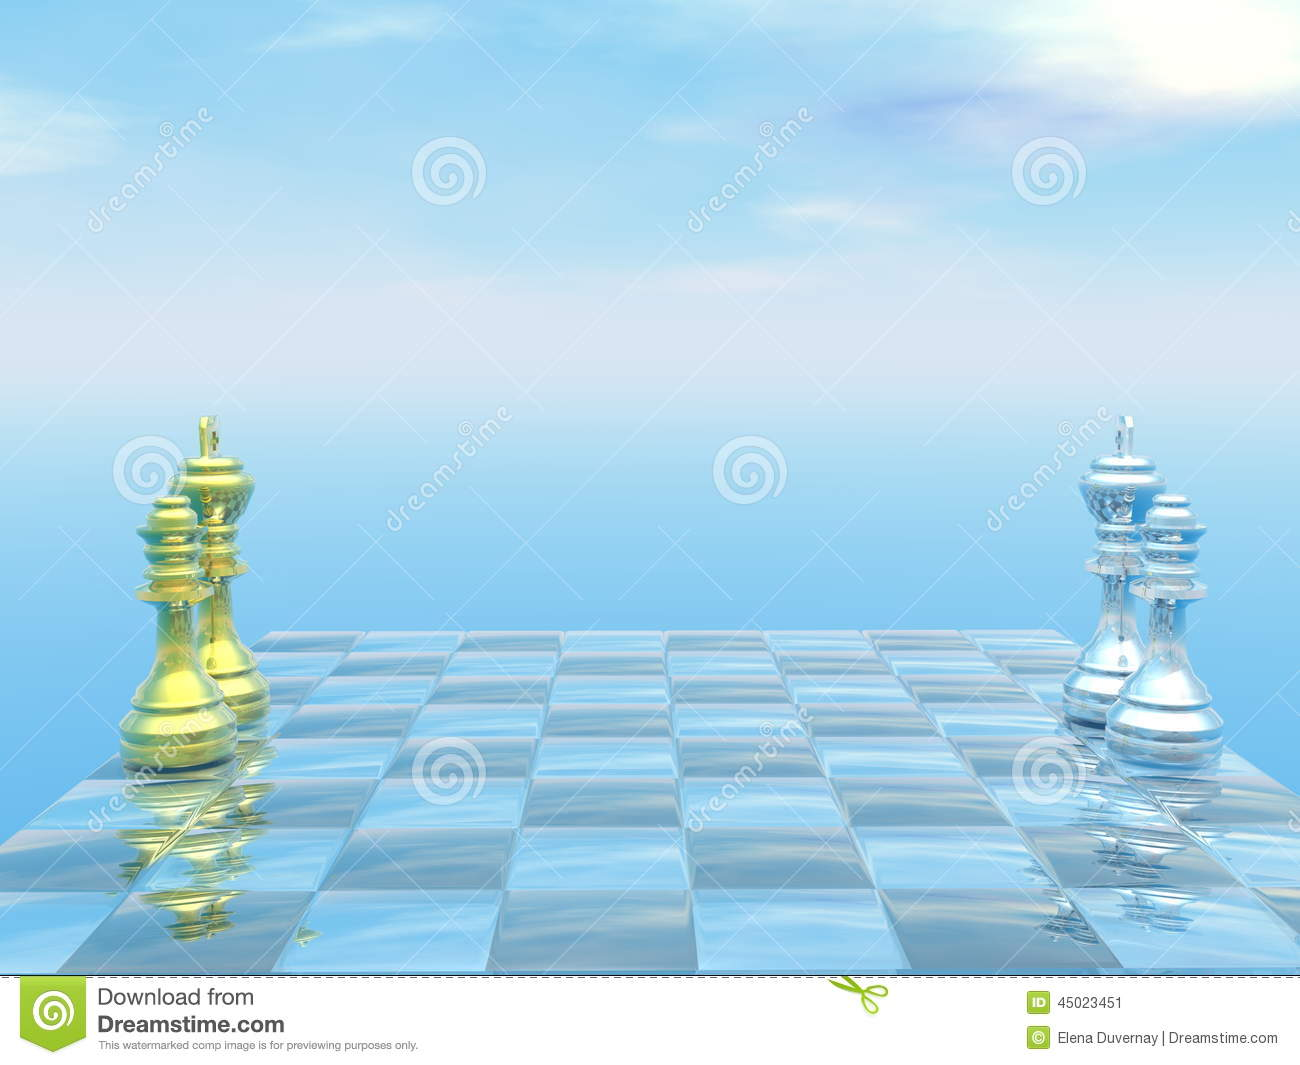 free illustration chessboard render - photo #19